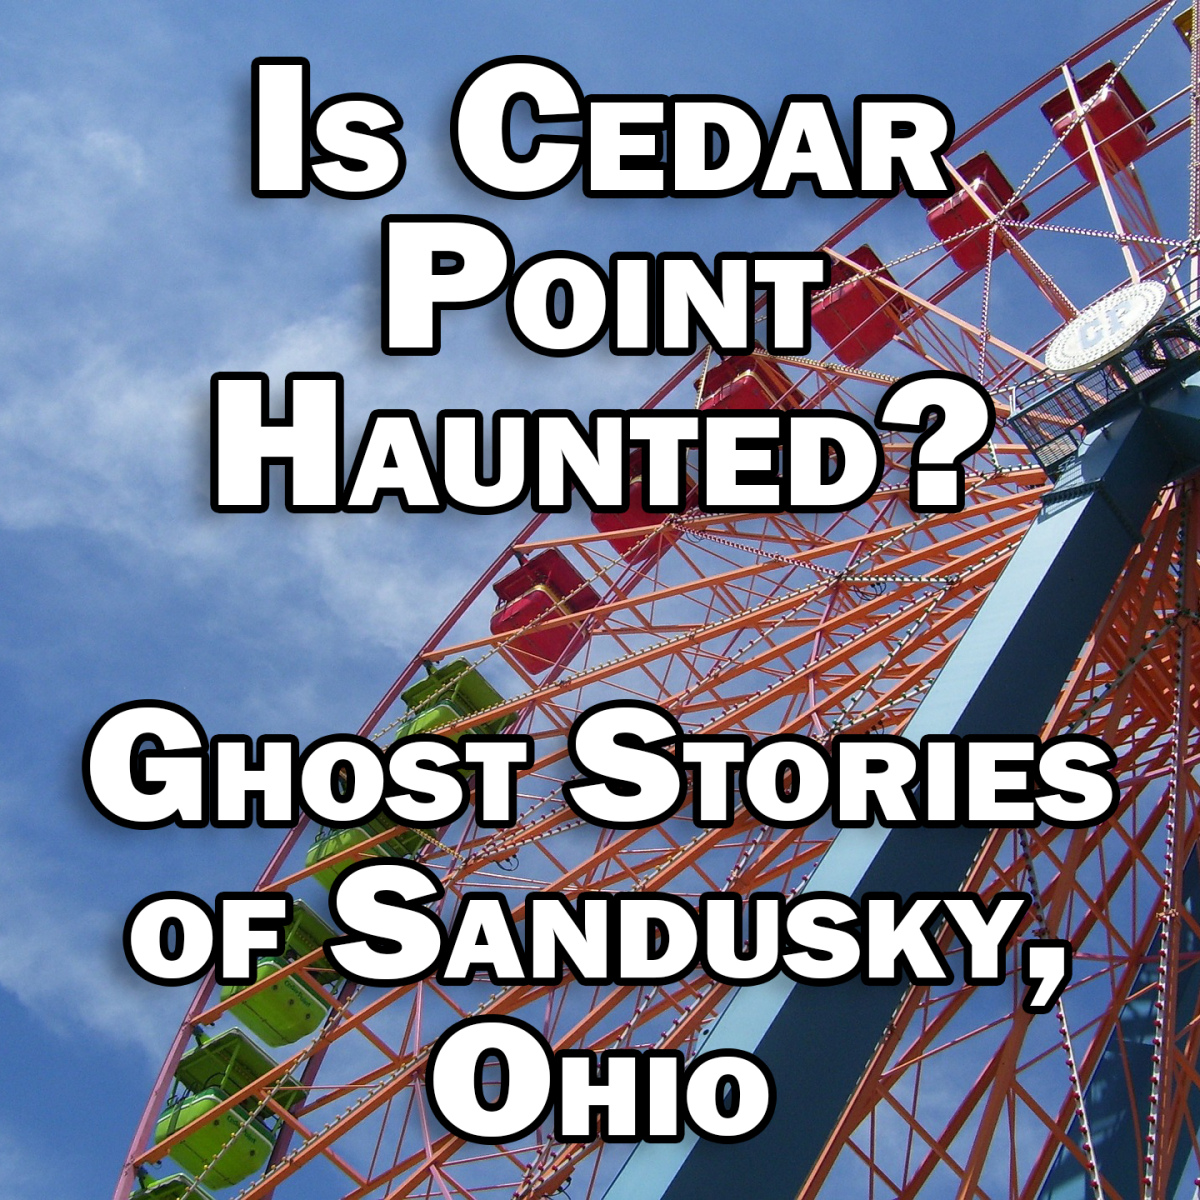 Is Cedar Point Haunted? Ghost Stories of Sandusky, Ohio